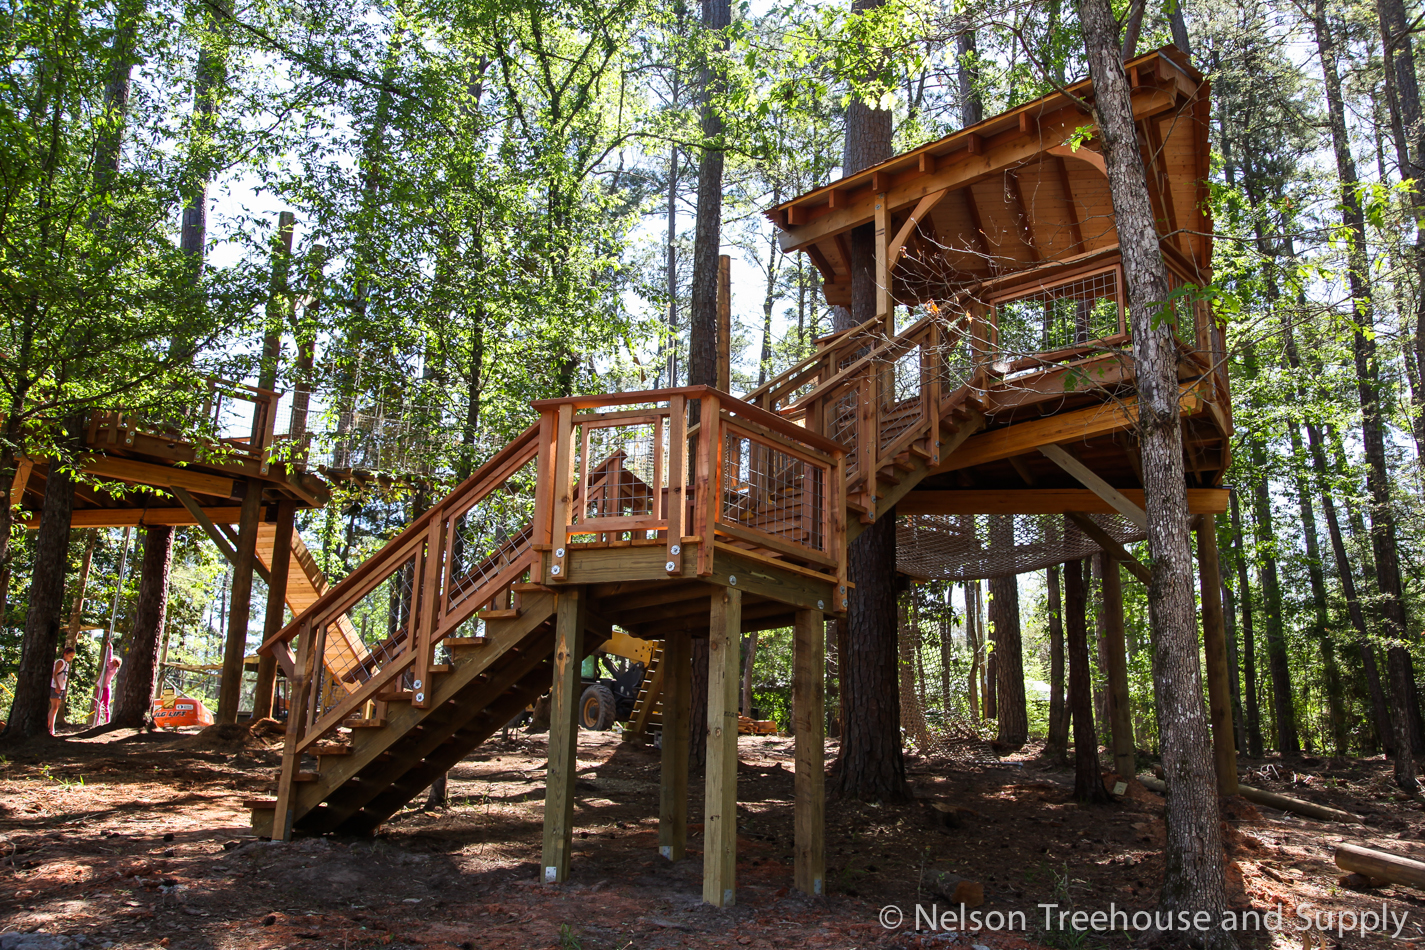 More hog wire railing on the Camp Cho Yeh treehouse